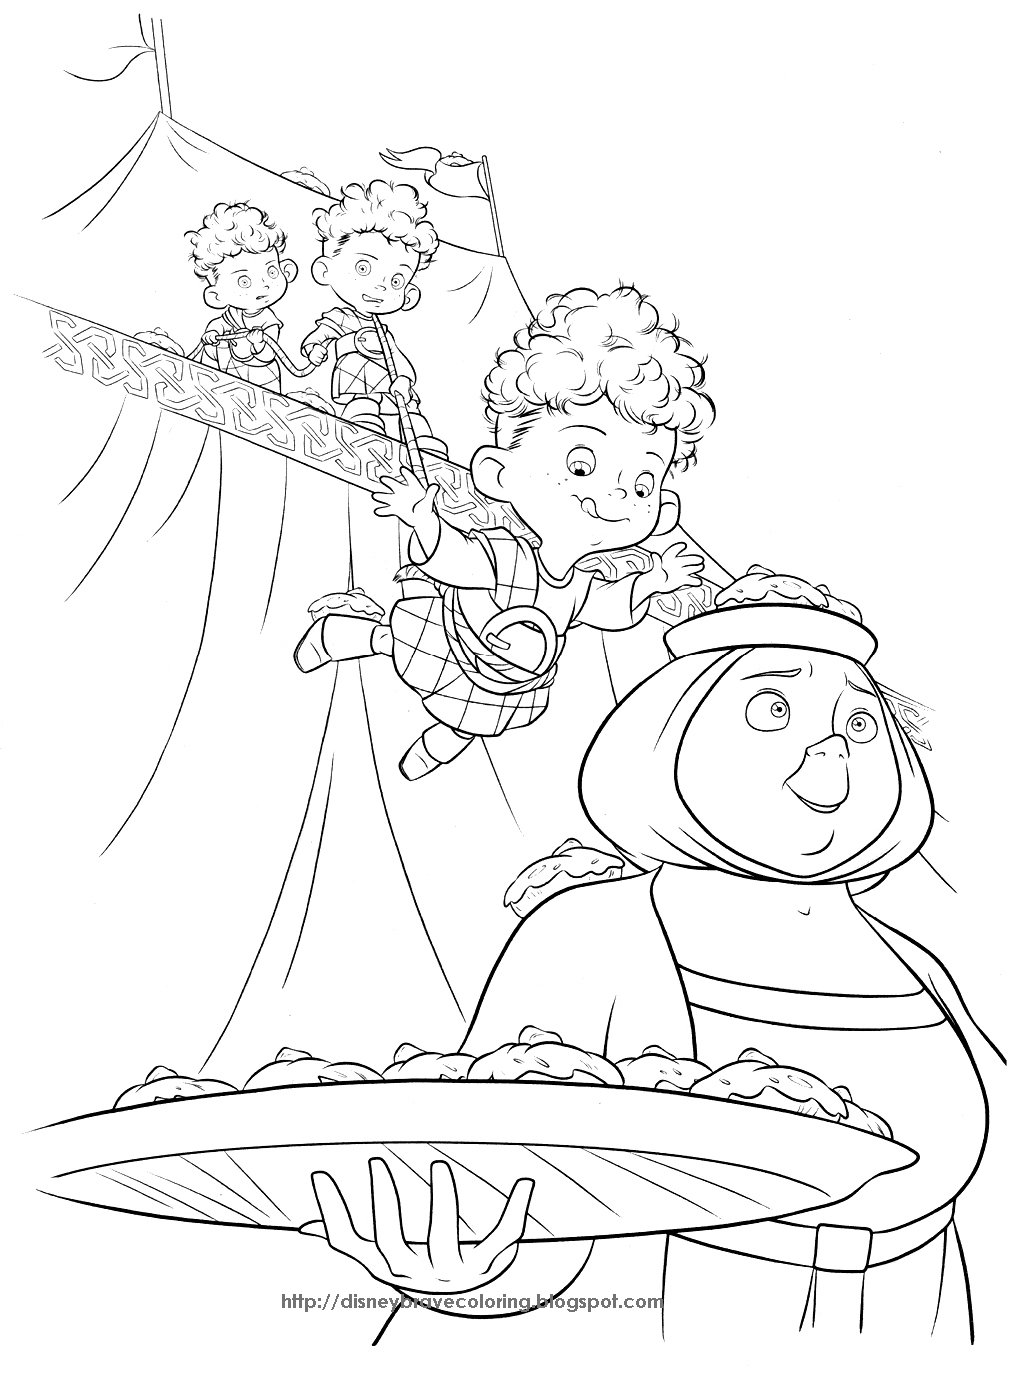 brave coloring pages games free - photo#37